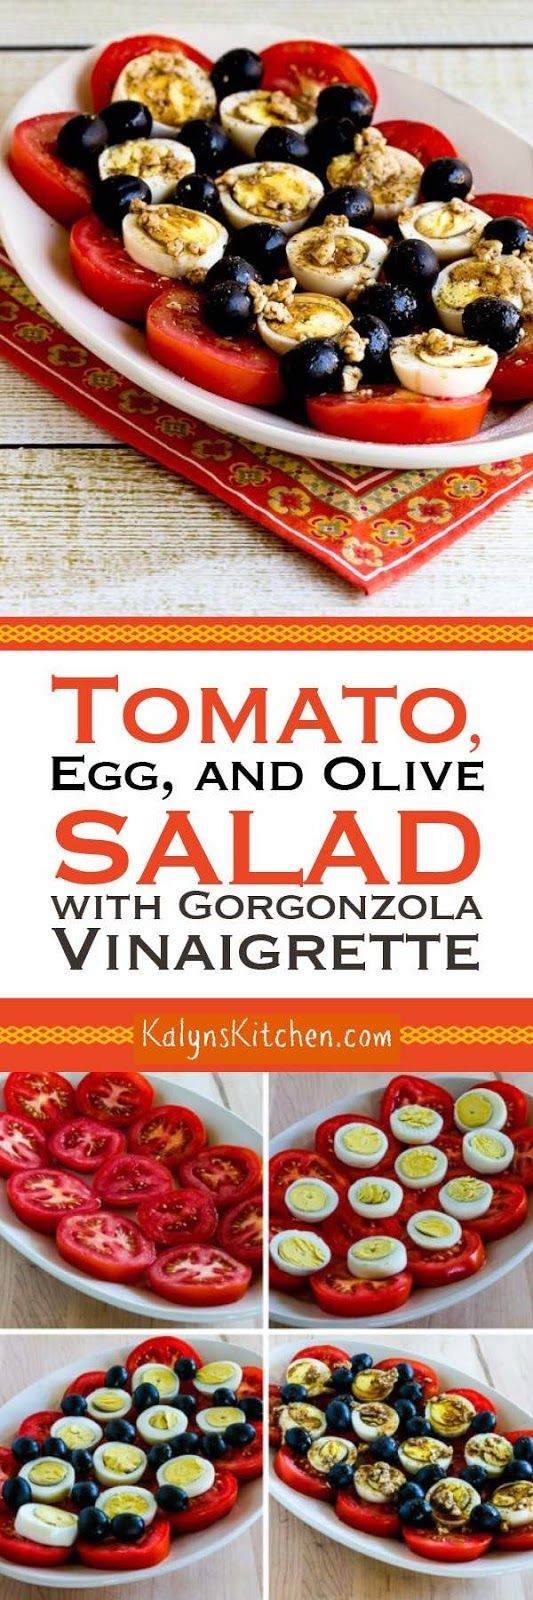 When you have fresh garden tomatoes, this Tomato, Egg, and Olive Salad with Gorgonzola Vinaigrette is completely a WOW, and this tasty salad is low-carb, gluten-free, meatless, and South Beach Diet friendly. To make the salad Whole 30 or Paleo, just use a vinaigrette dressing without cheese! [found on KalynsKitchen.com]